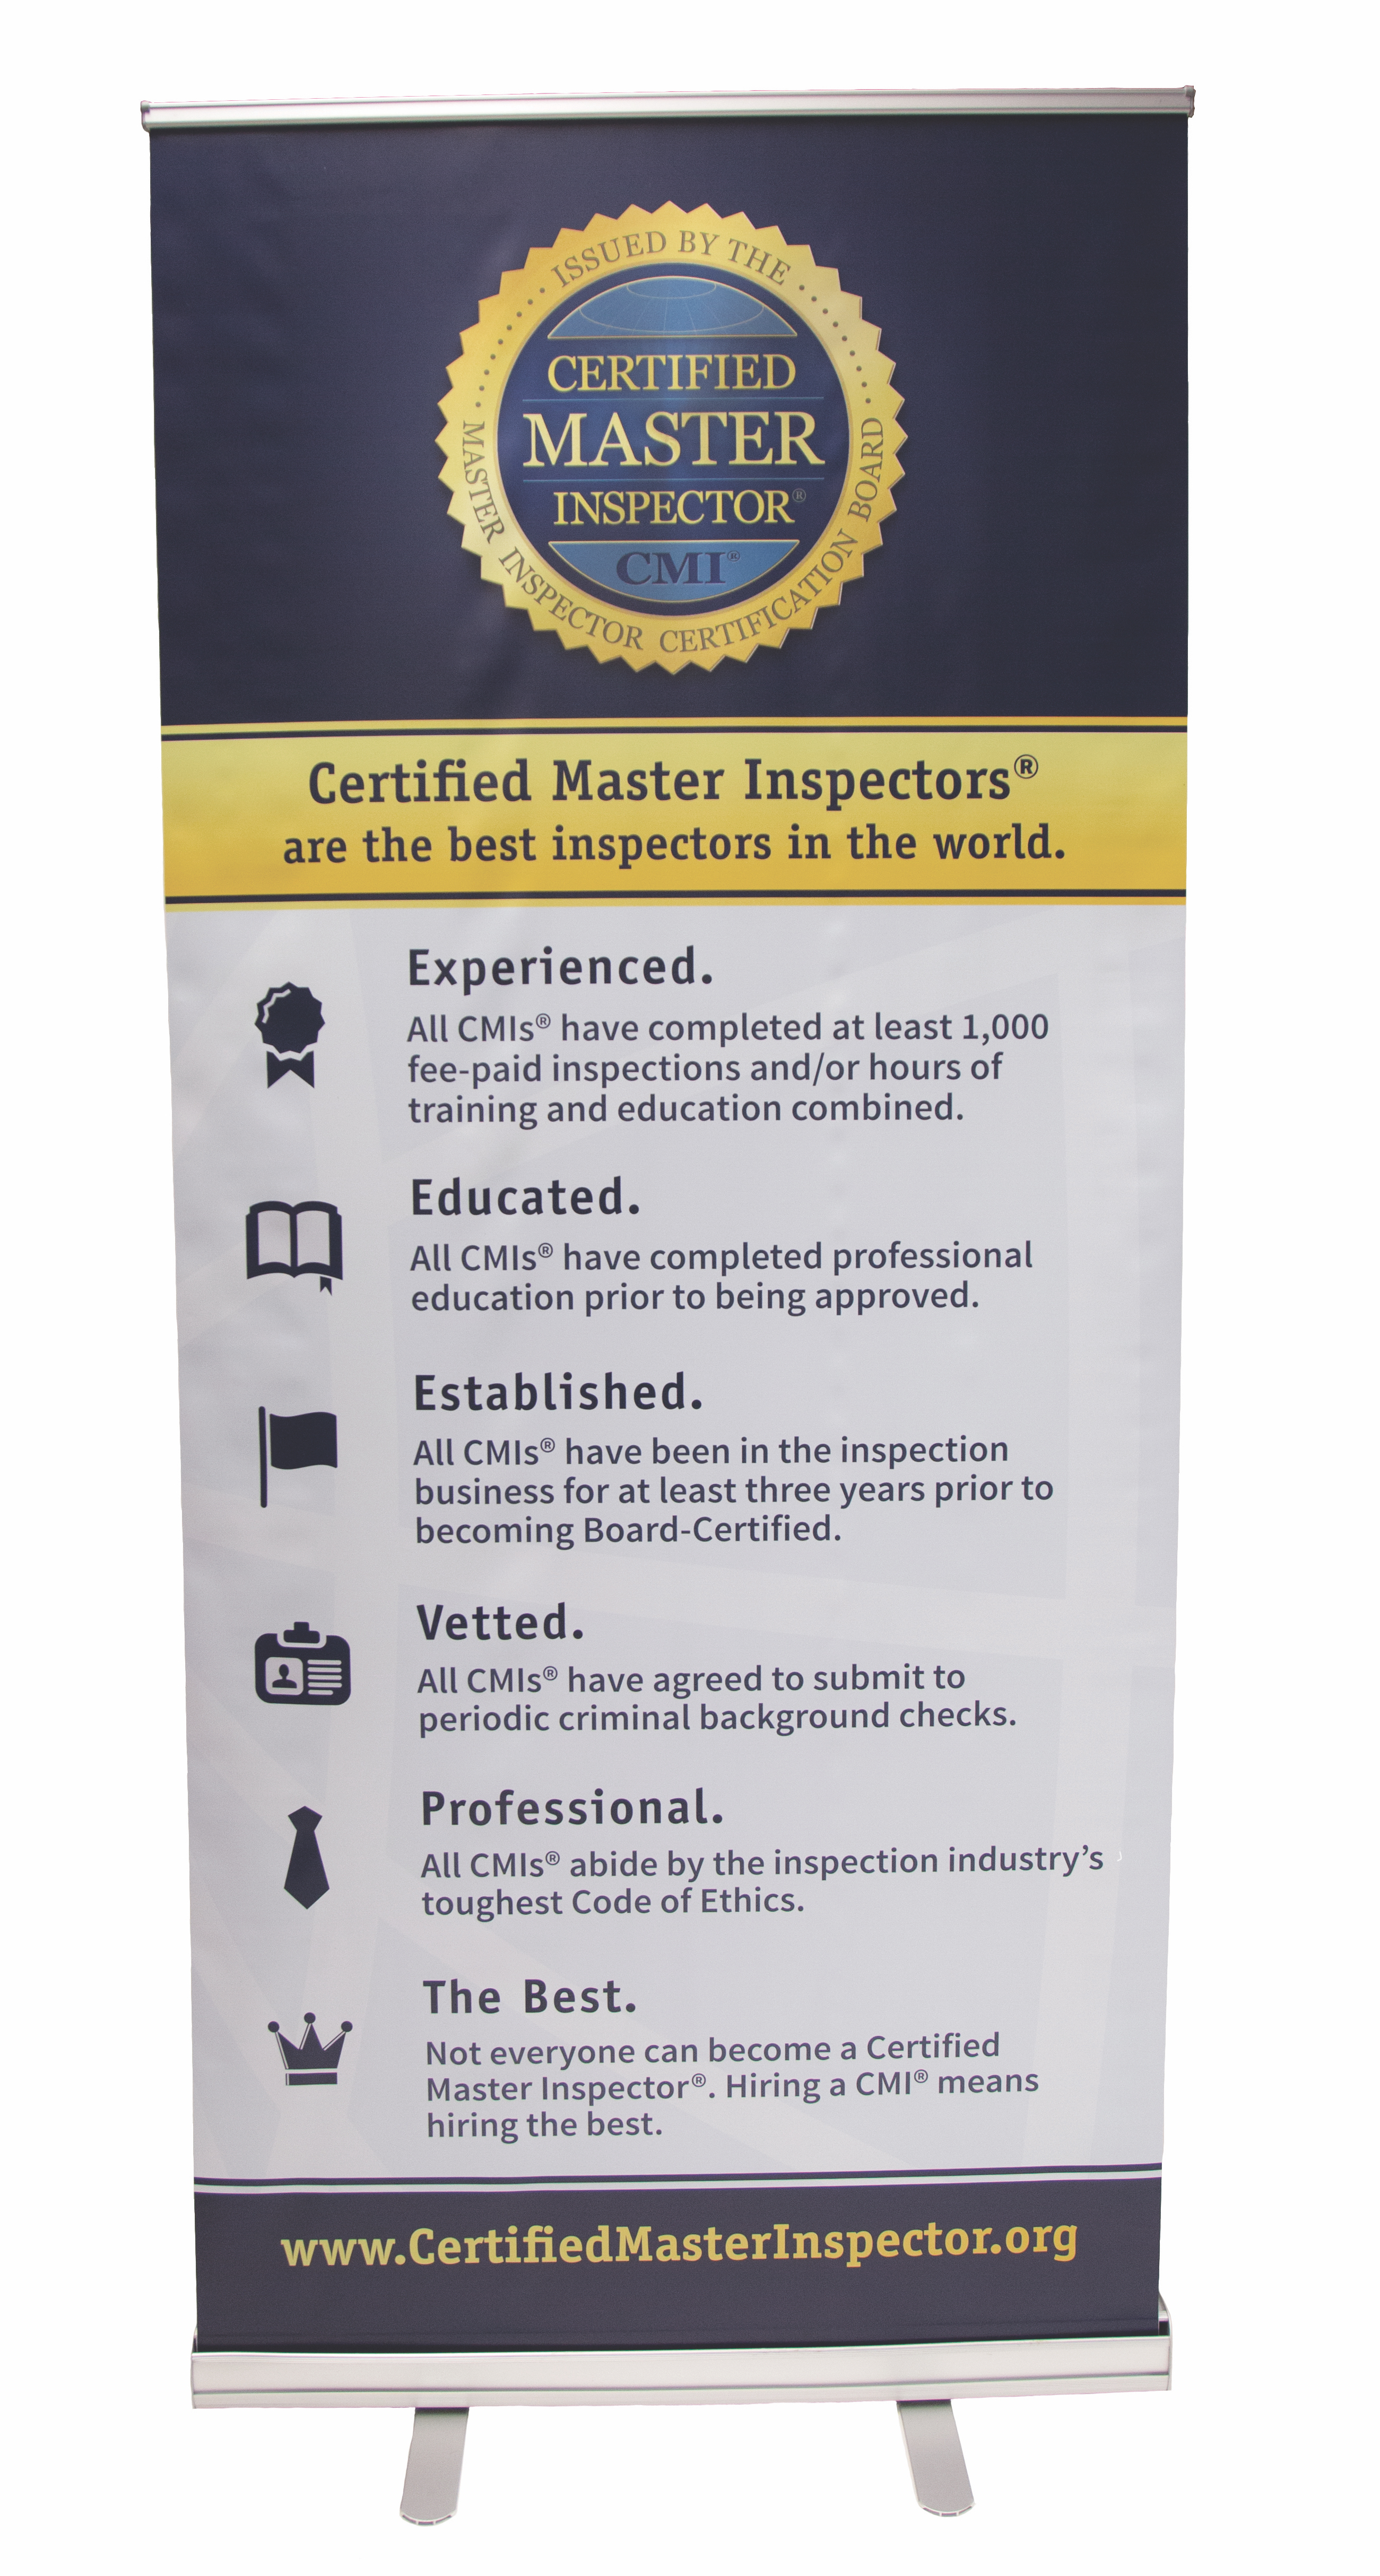 Free Certified Master Inspector Banner Stands For Events